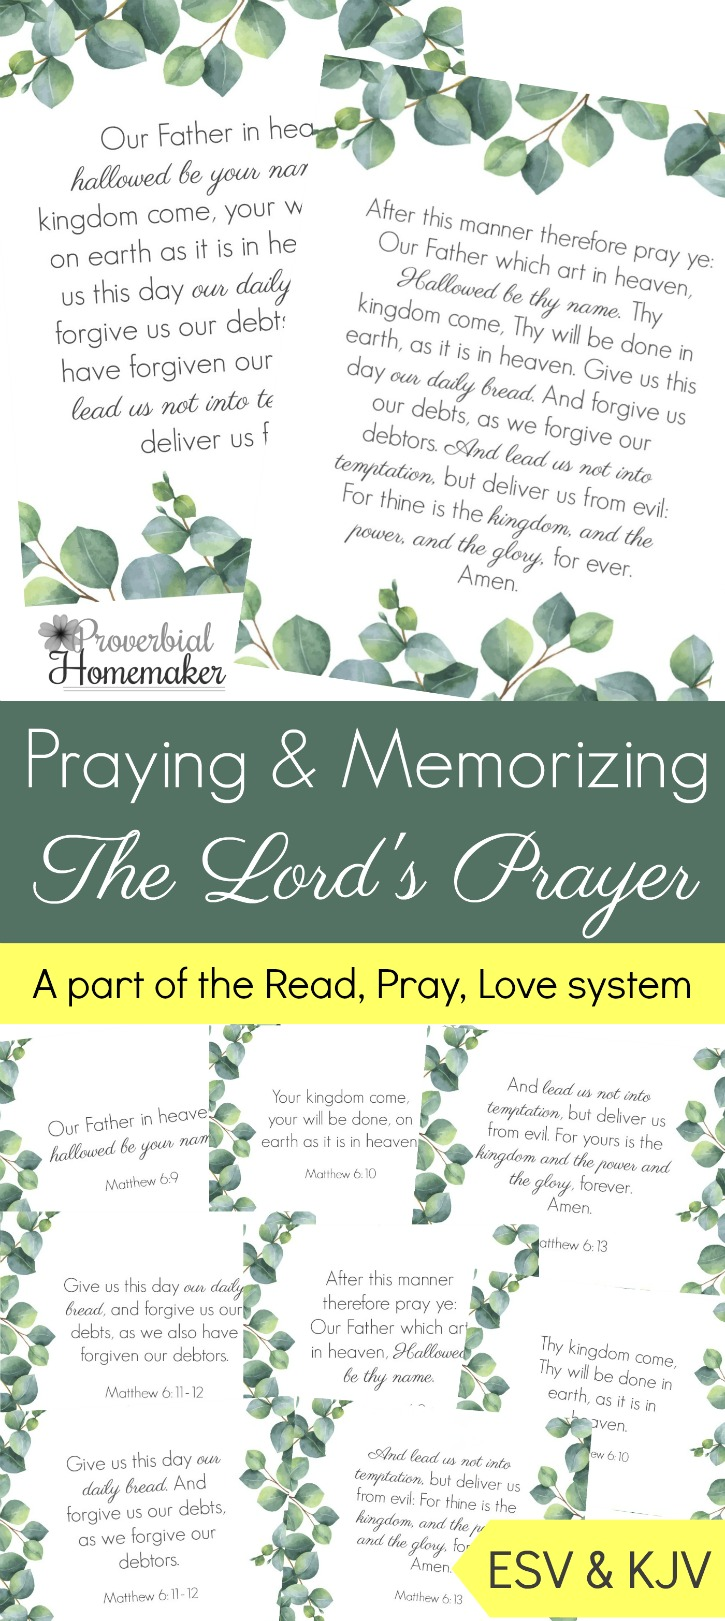 image about The Lord's Prayer Kjv Printable identified as Praying and Memorizing The Lords Prayer - Proverbial Homemaker